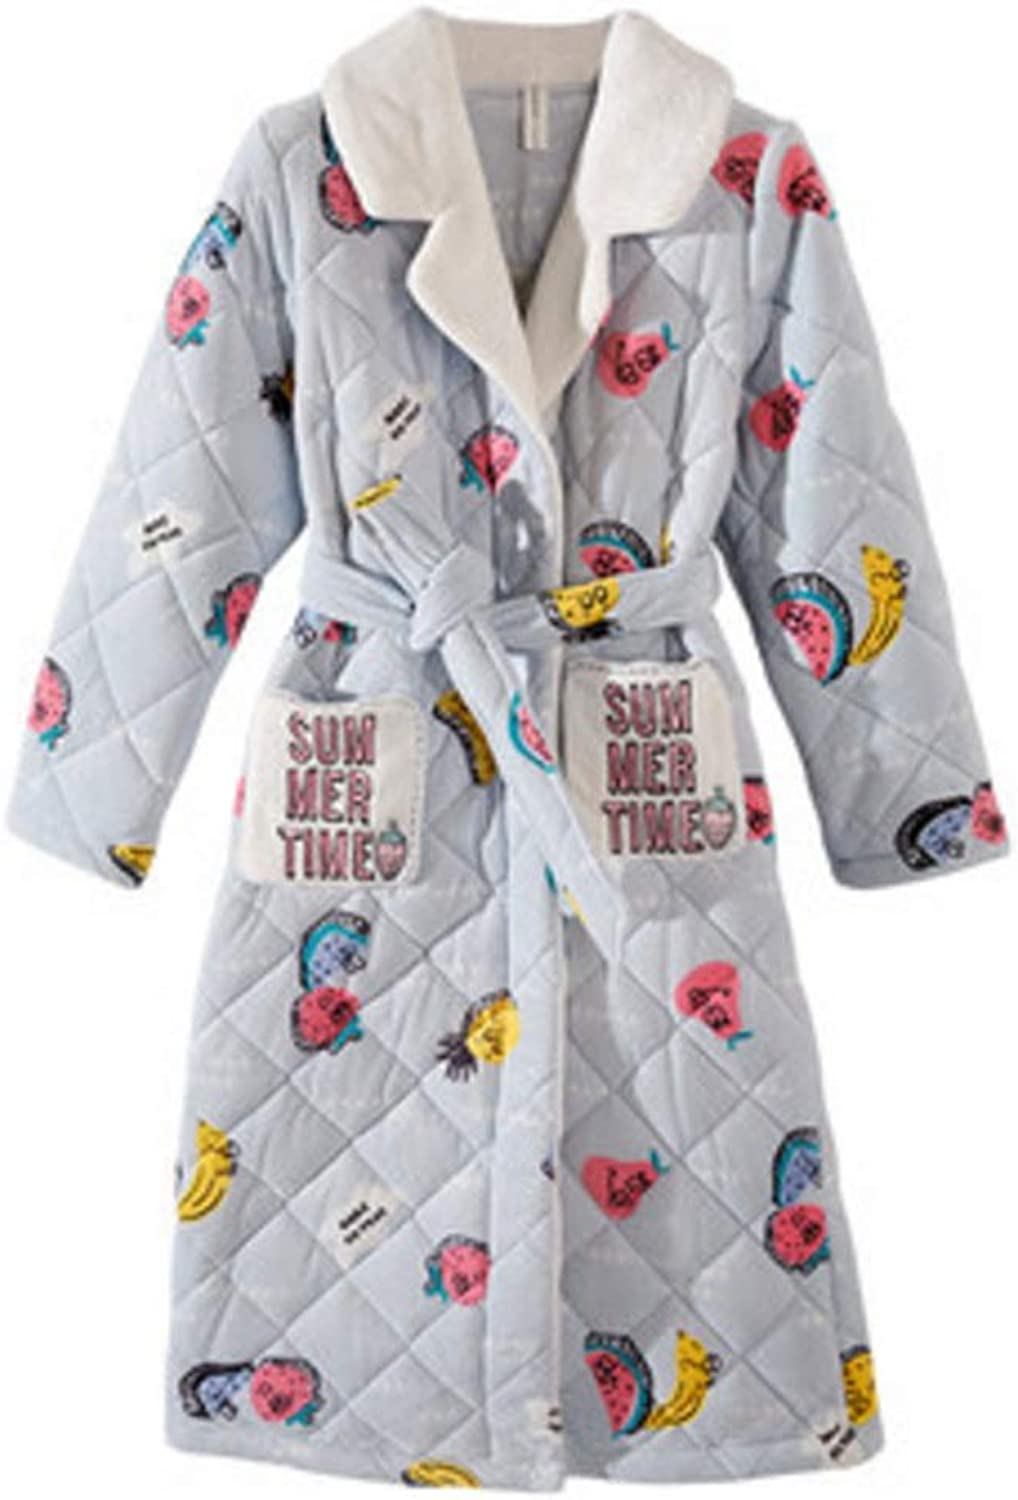 NAN Liang Bathrobe ThreeLayer Thickening 100% Cotton Nightdress Female Cartoon Cardigan Nightgown Home Service Soft (Size   S)